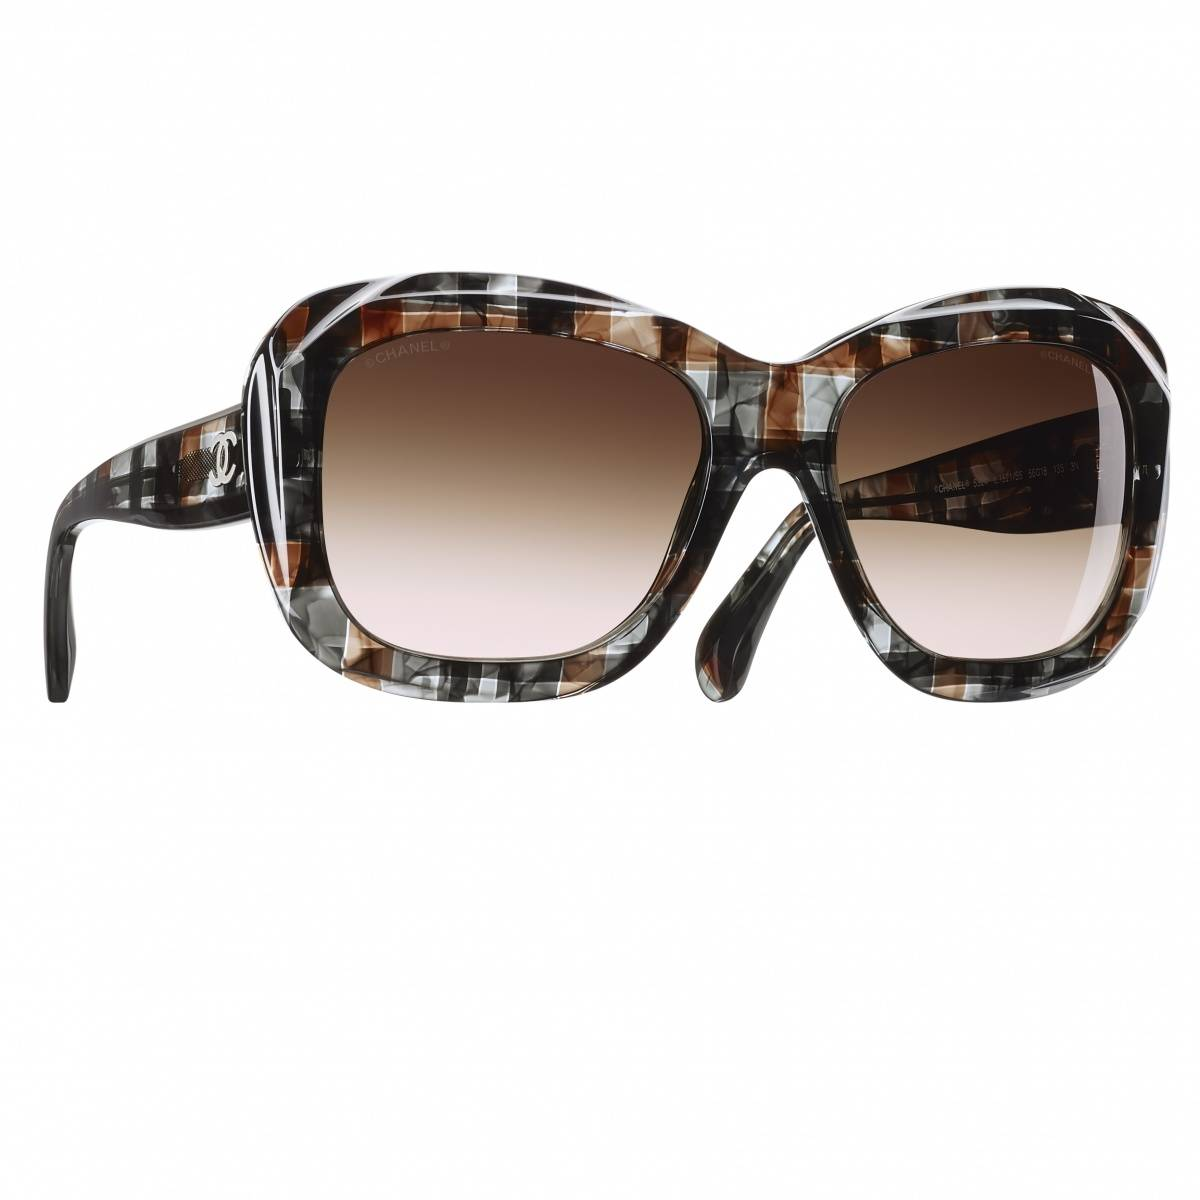 Chanel Tweed Eyeglass Frames : The Most Unique Sunnies of 2015